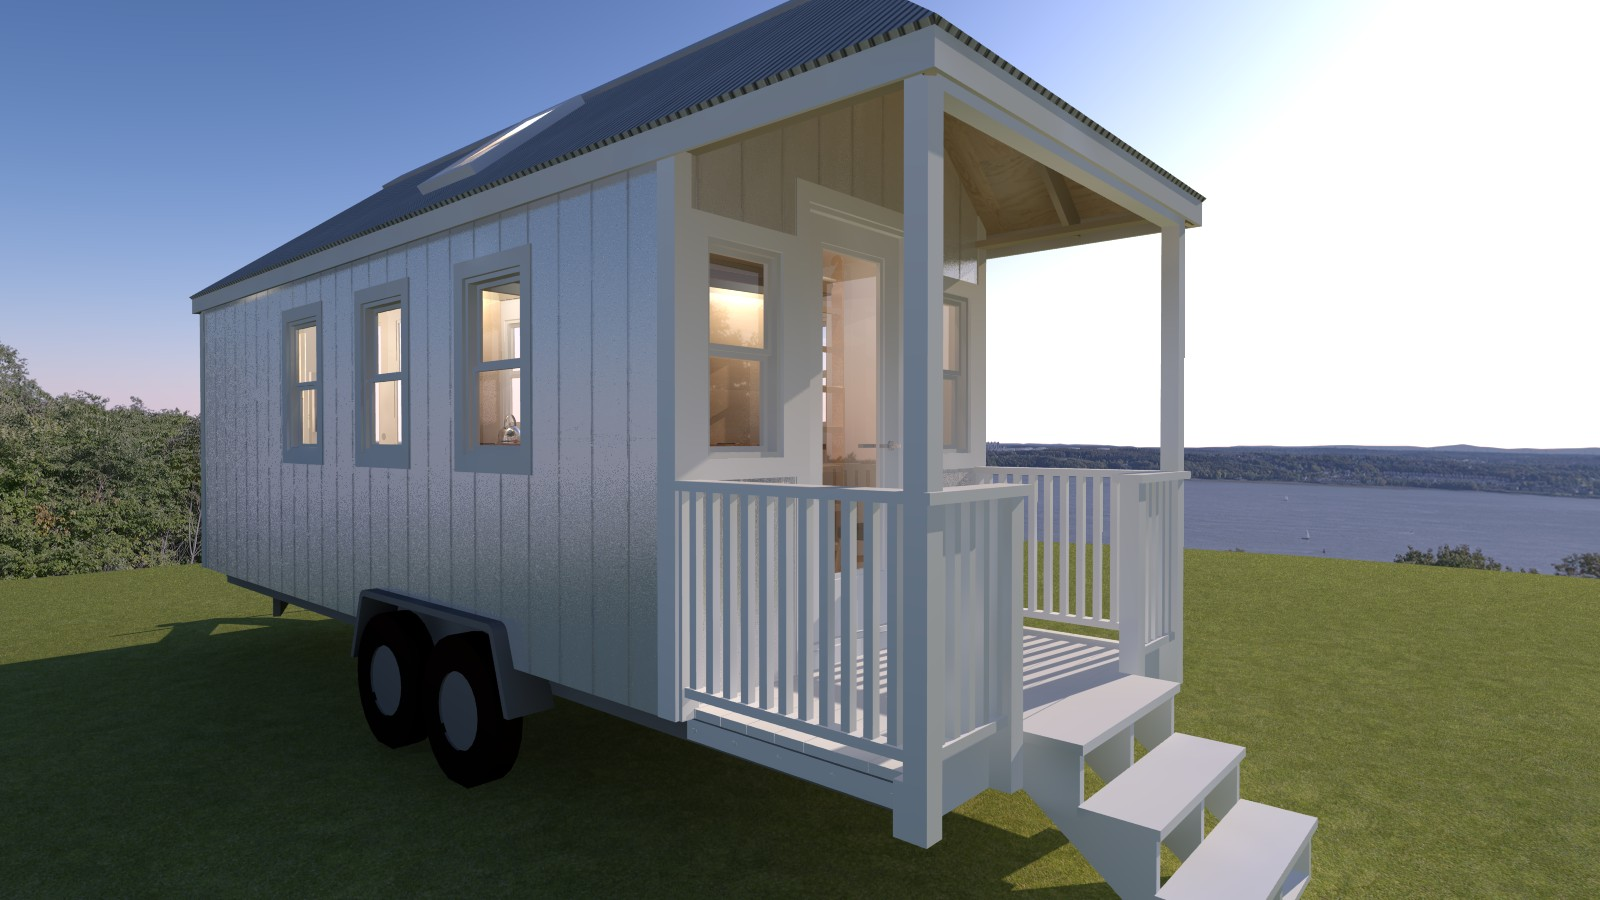 Boonville 24 tiny house plans for Small frontage house designs